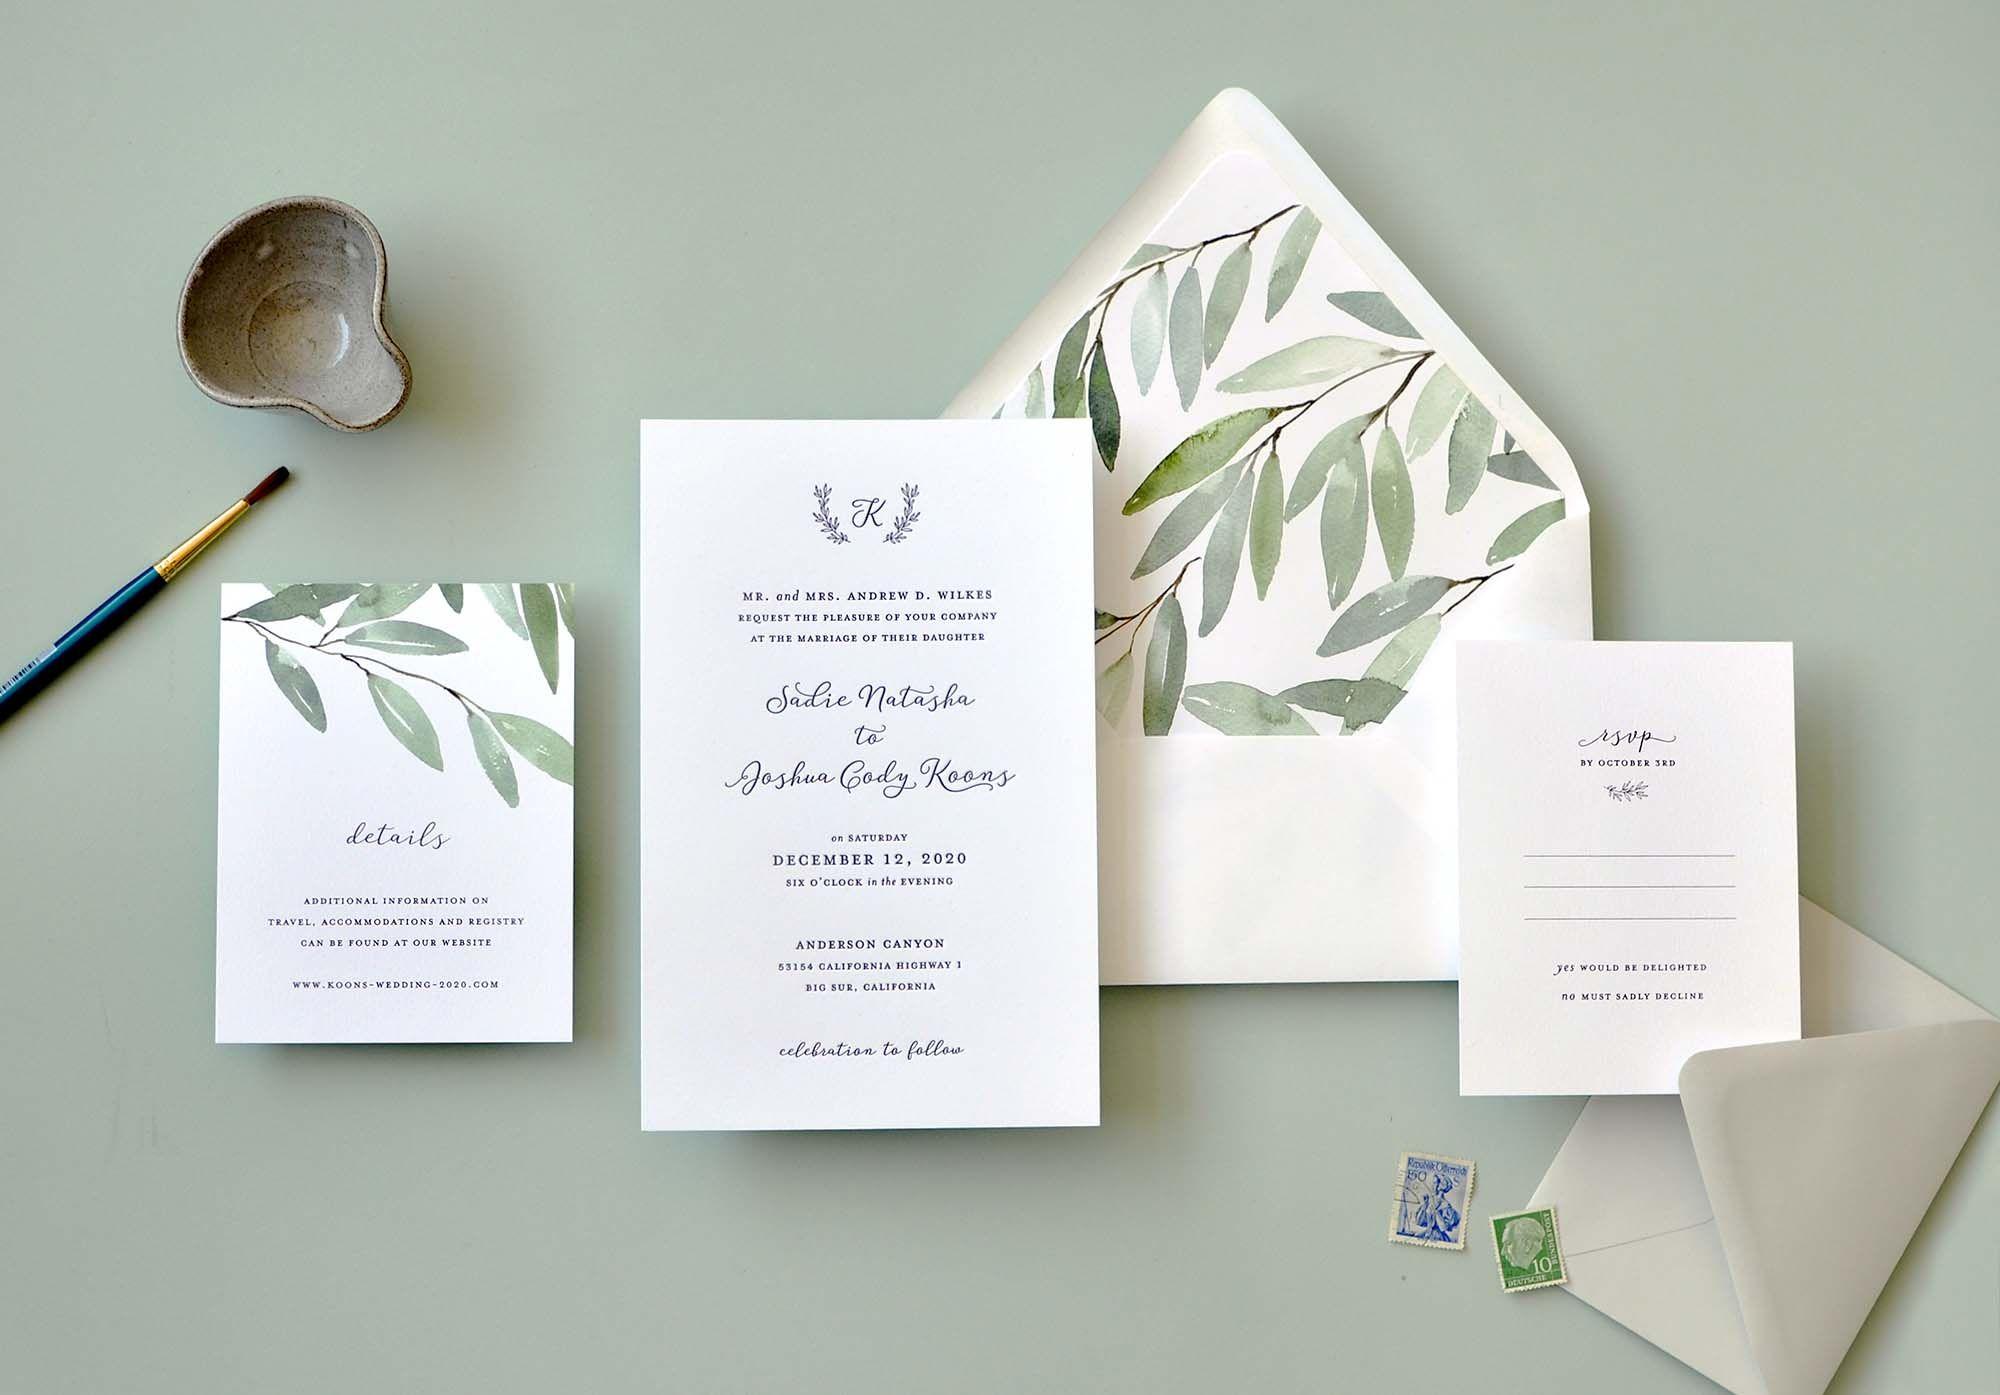 Sa Wedding Invitation One Color Letterpress Monogrammed Design With Botanical Envelope Liner Is A Lovely Simple Just Touch Of Garden